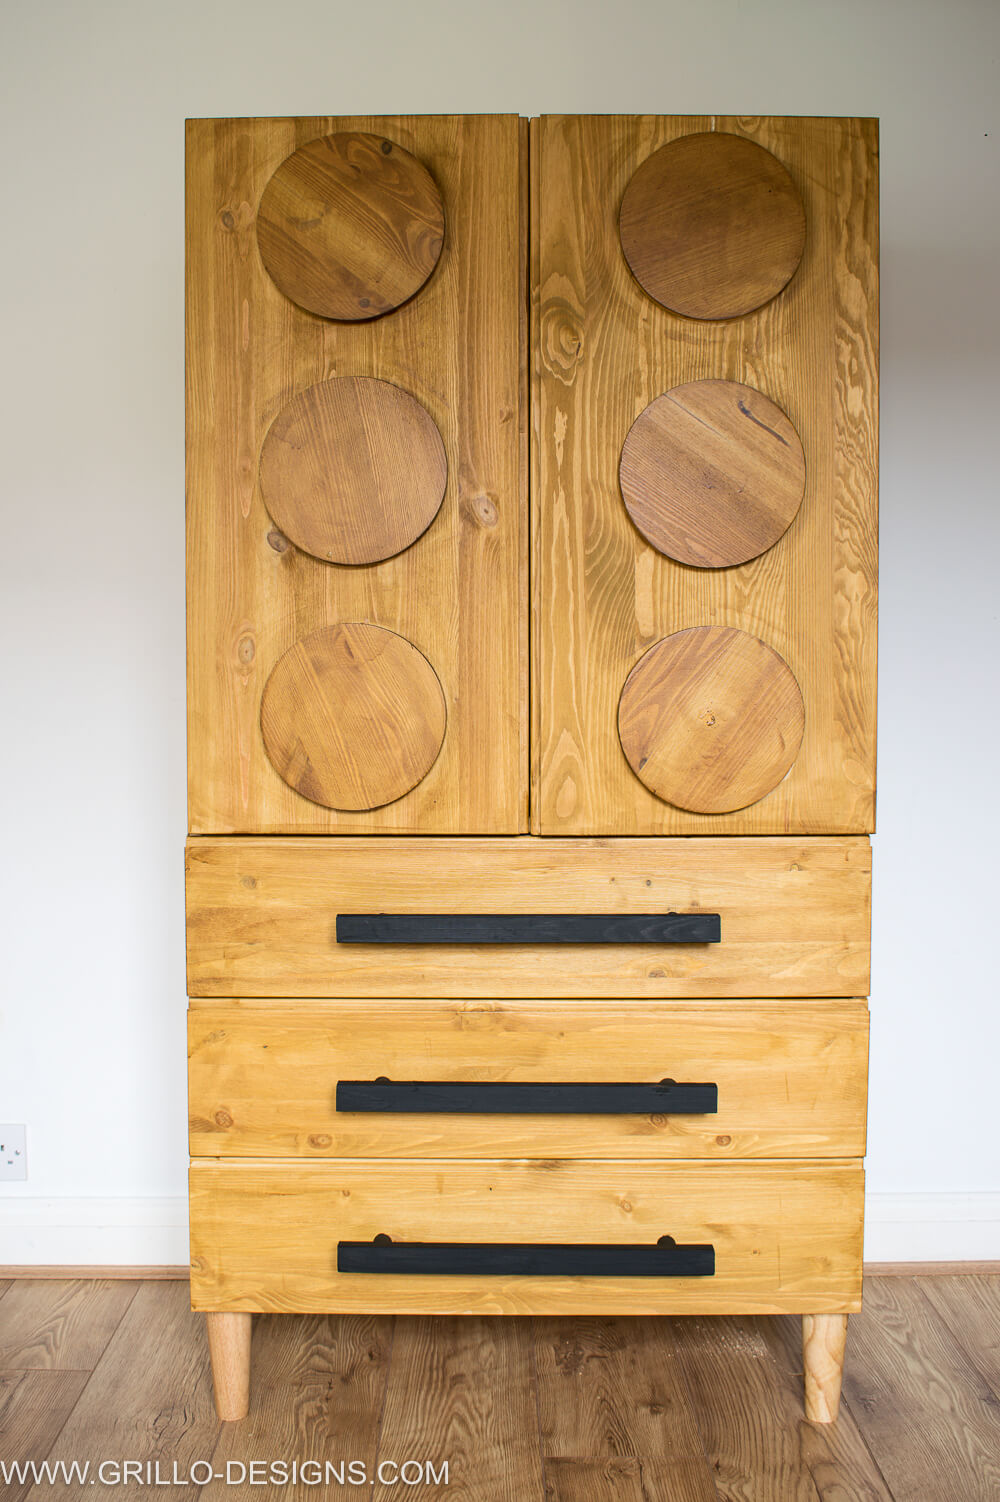 Black handles placed on the drawers of the wooden lego inspired wardrobe